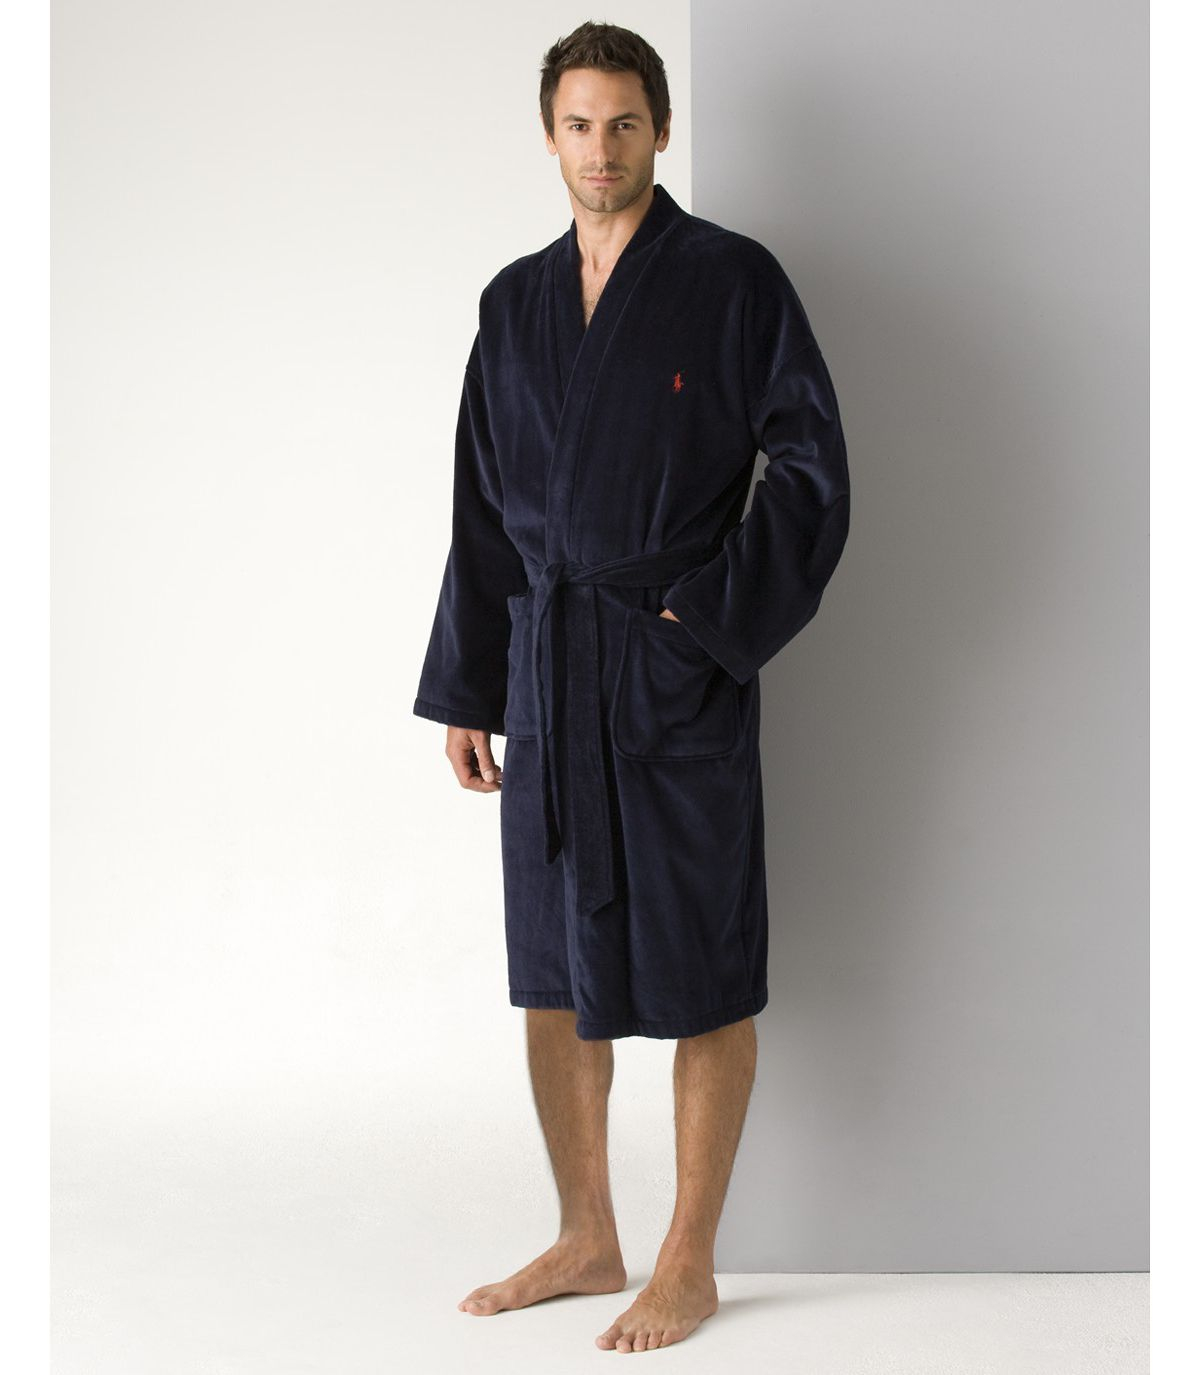 polo ralph lauren men 39 s kimono cotton velour robe in blue for men lyst. Black Bedroom Furniture Sets. Home Design Ideas